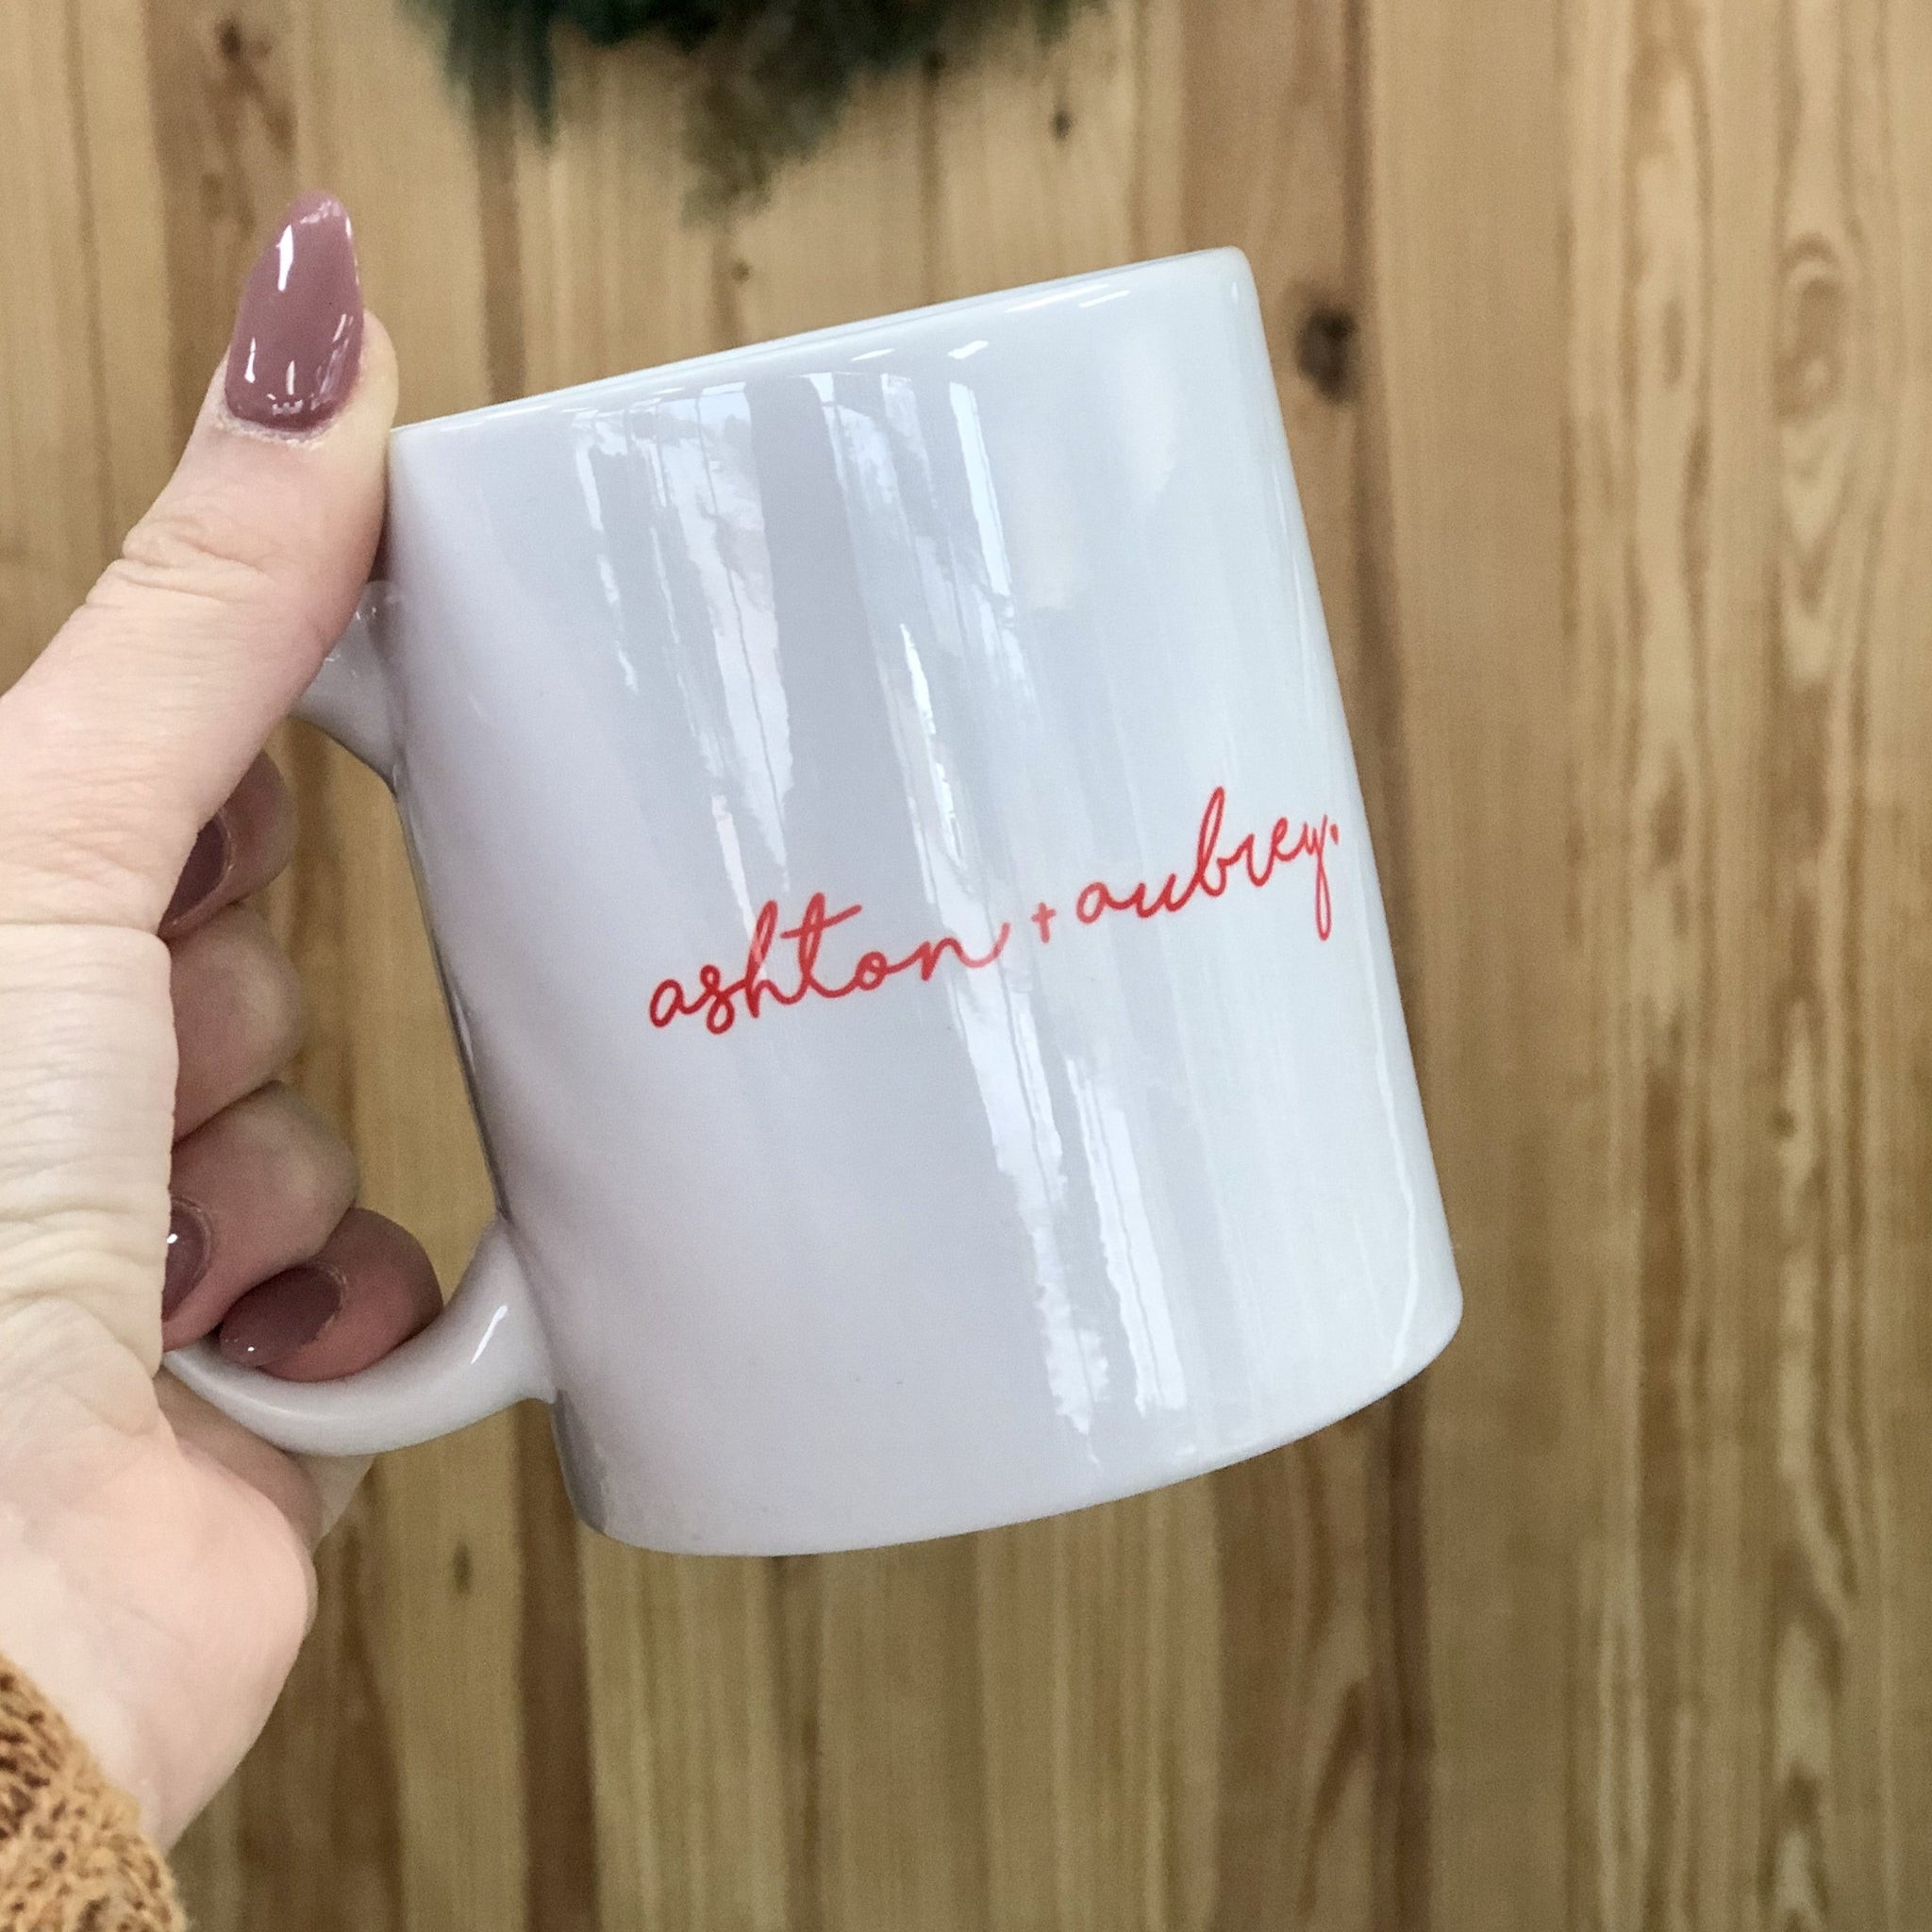 White ceramic coffee mug engraved with two names in a red cursive font.